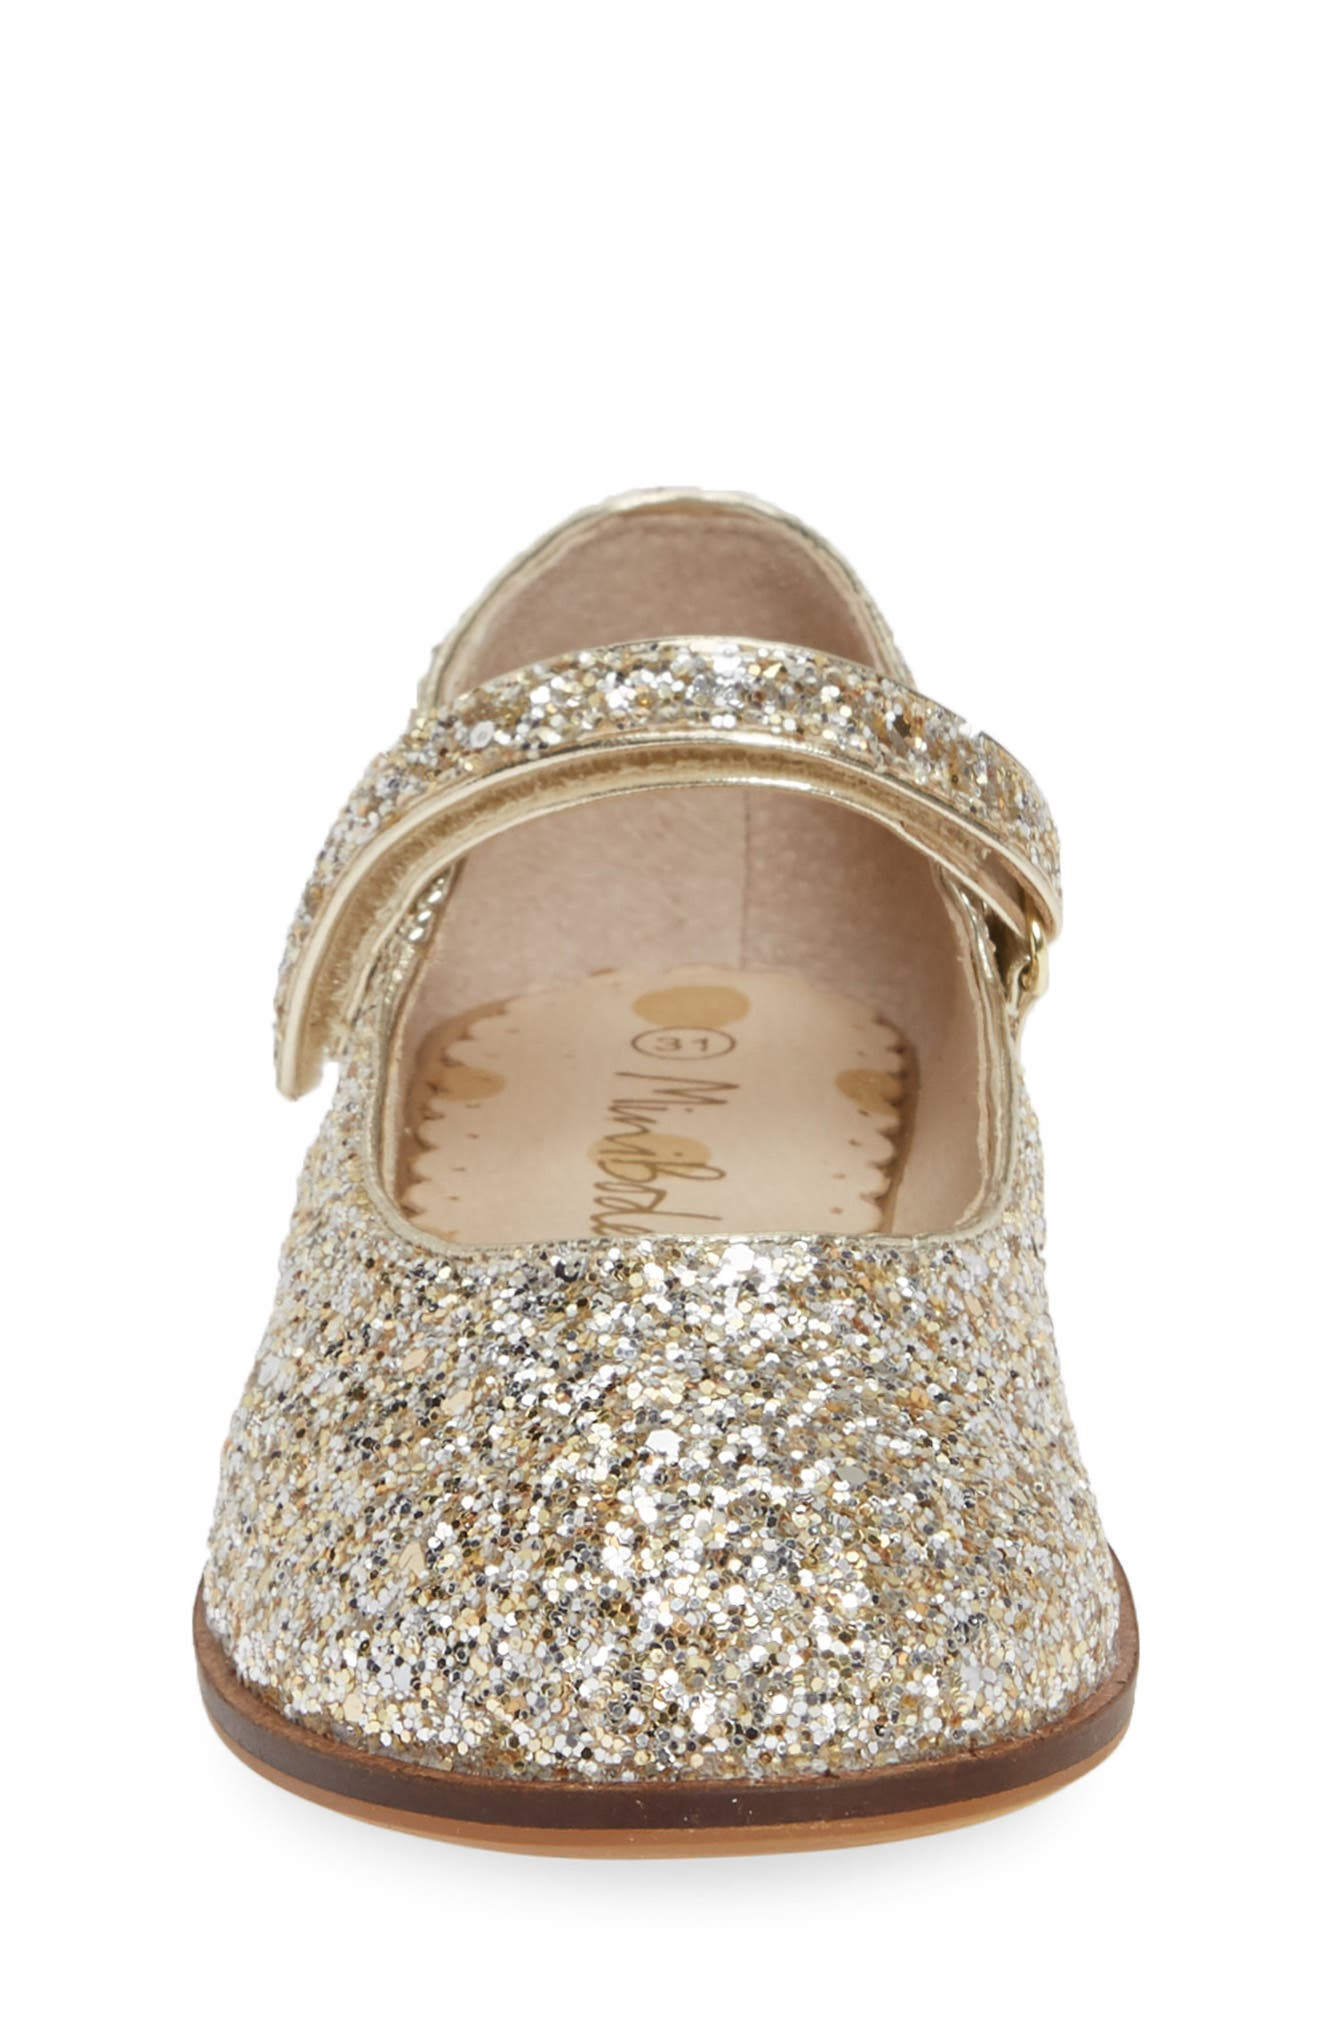 MINI BODEN, 'Fun' Mary Jane, Alternate thumbnail 4, color, SILVER/ GOLD GLITTER